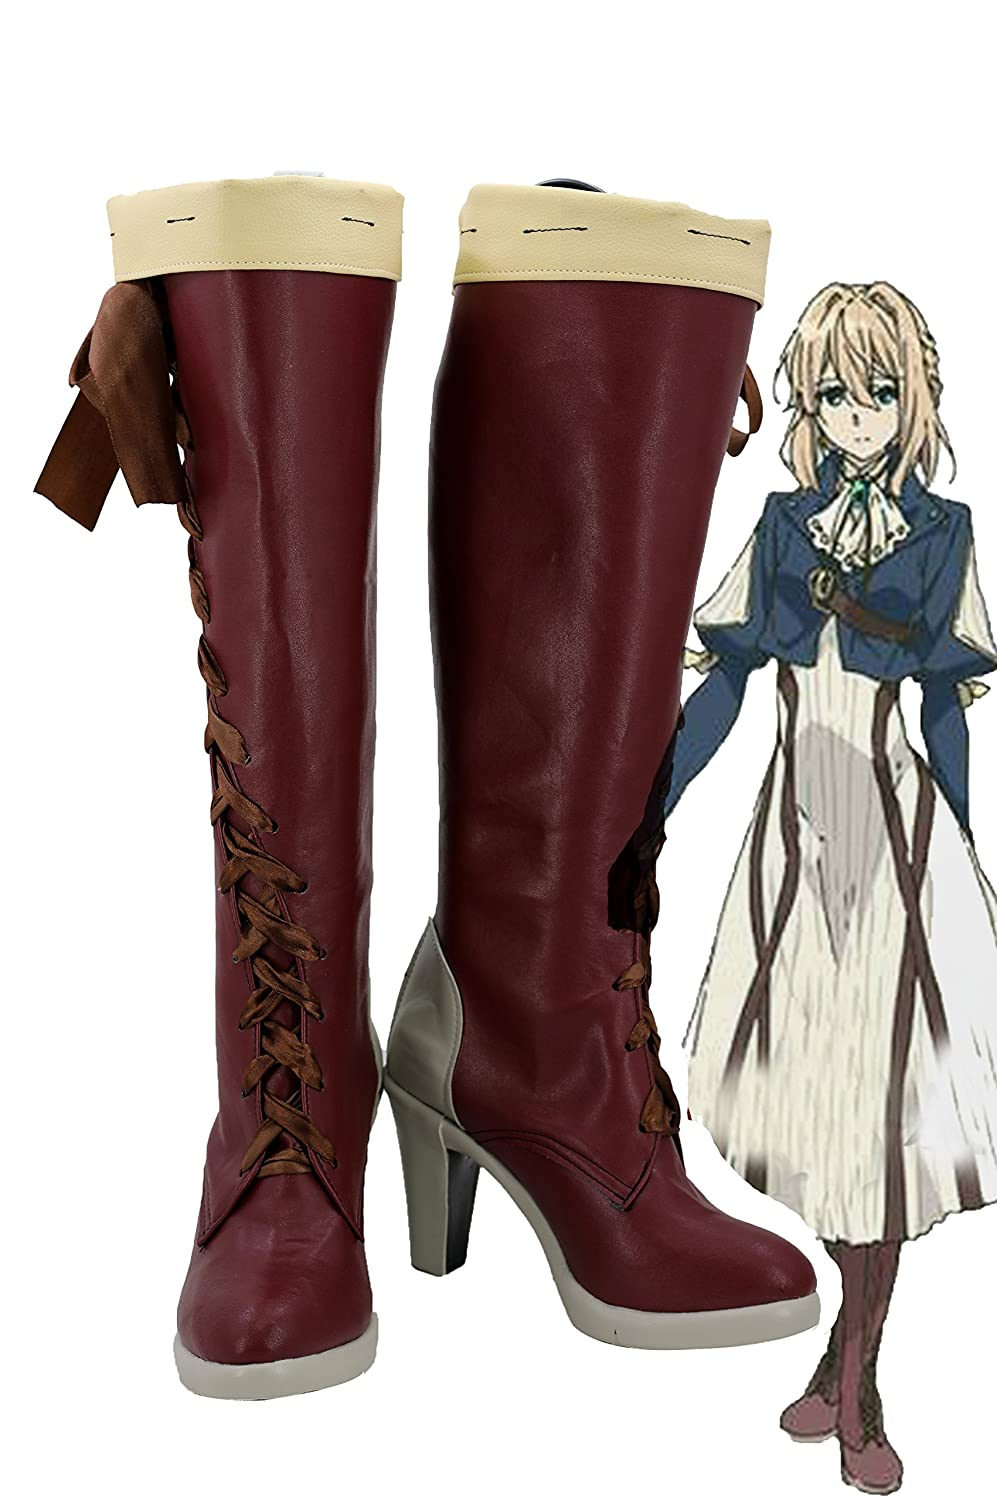 Telacos Violet Evergarden Violet Cosplay Shoes Boots Custom Made Red 2 5 D(M) US Male